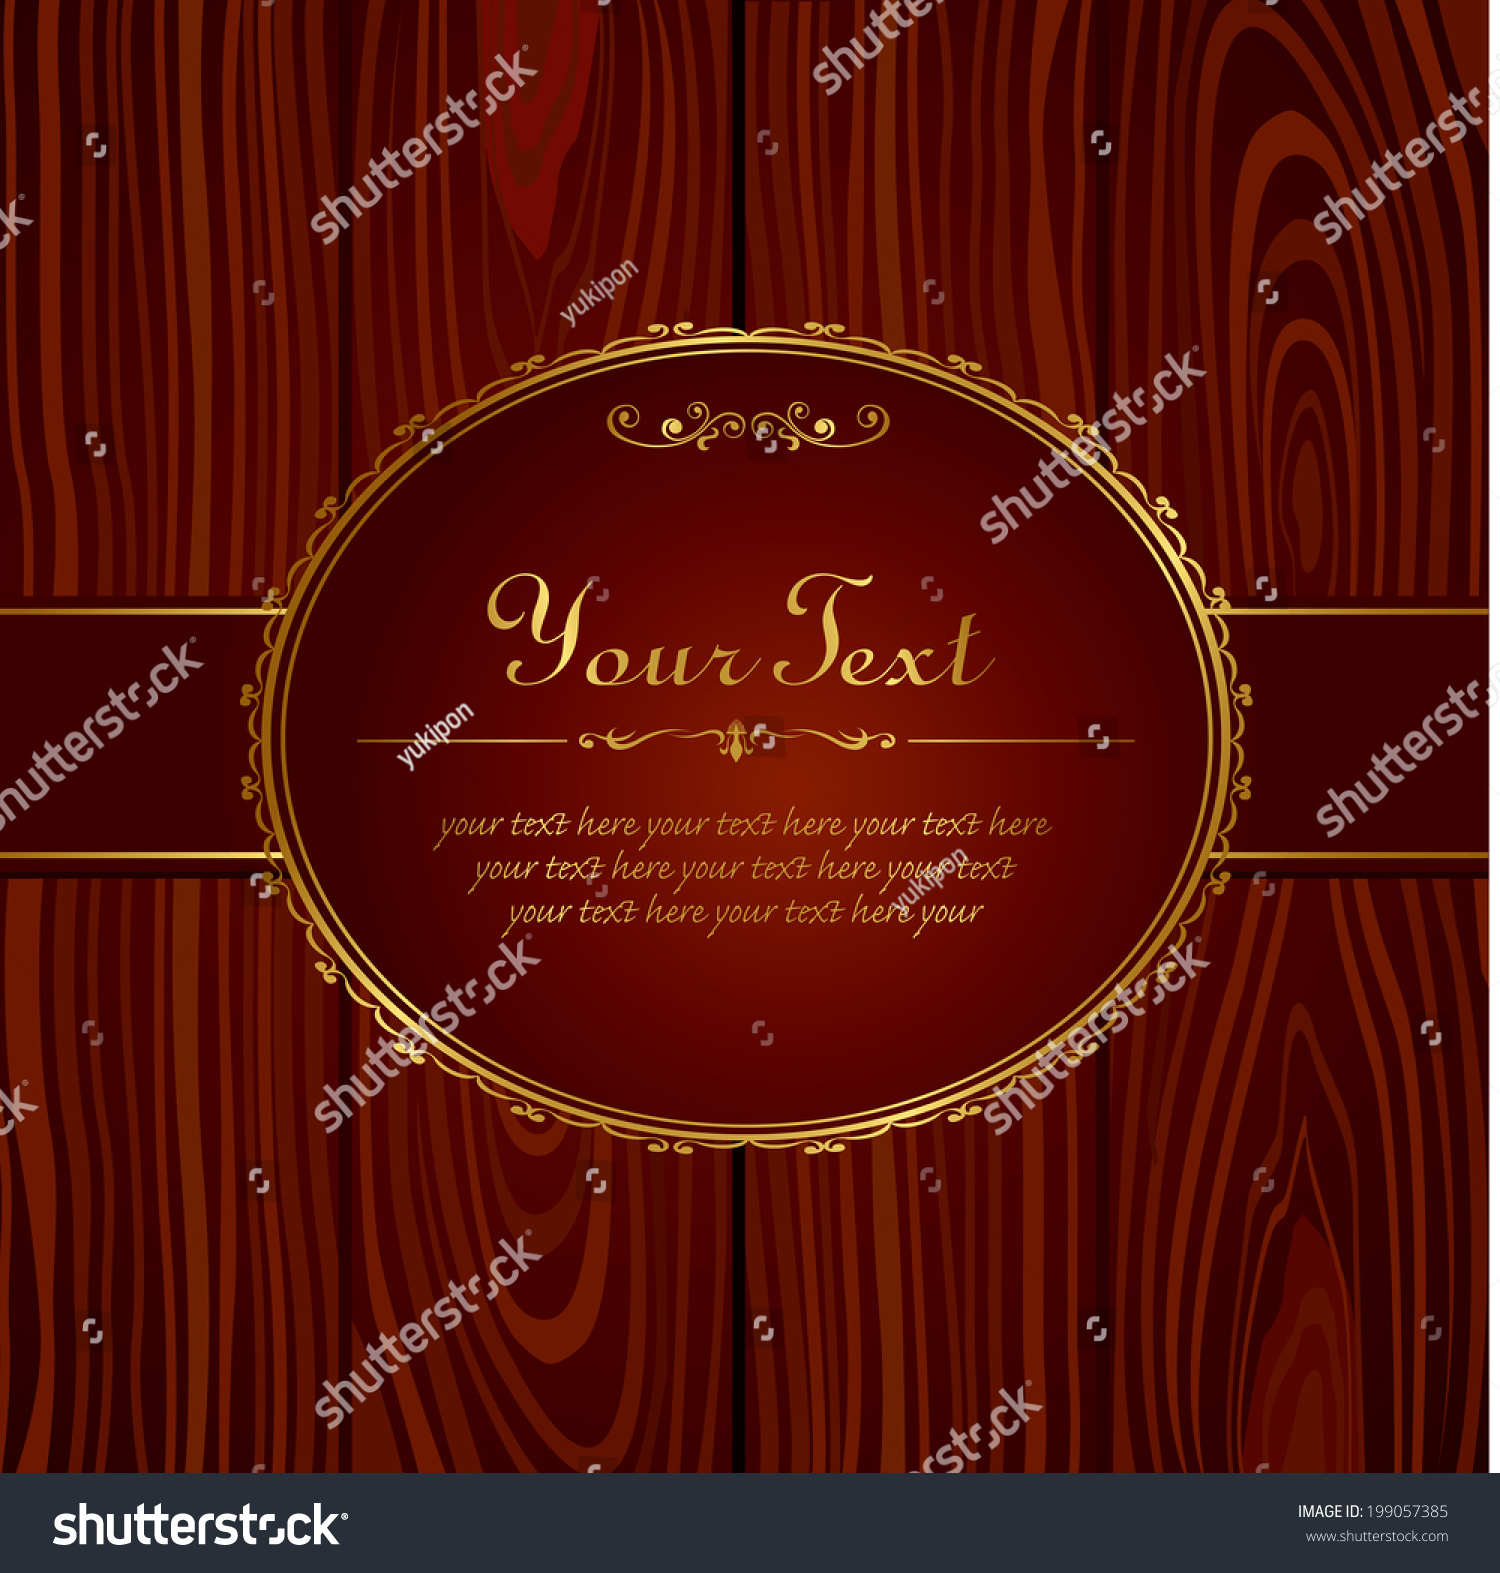 Invitation vintage label vector frame stock vector hd royalty free invitation vintage label vector frame stopboris Image collections